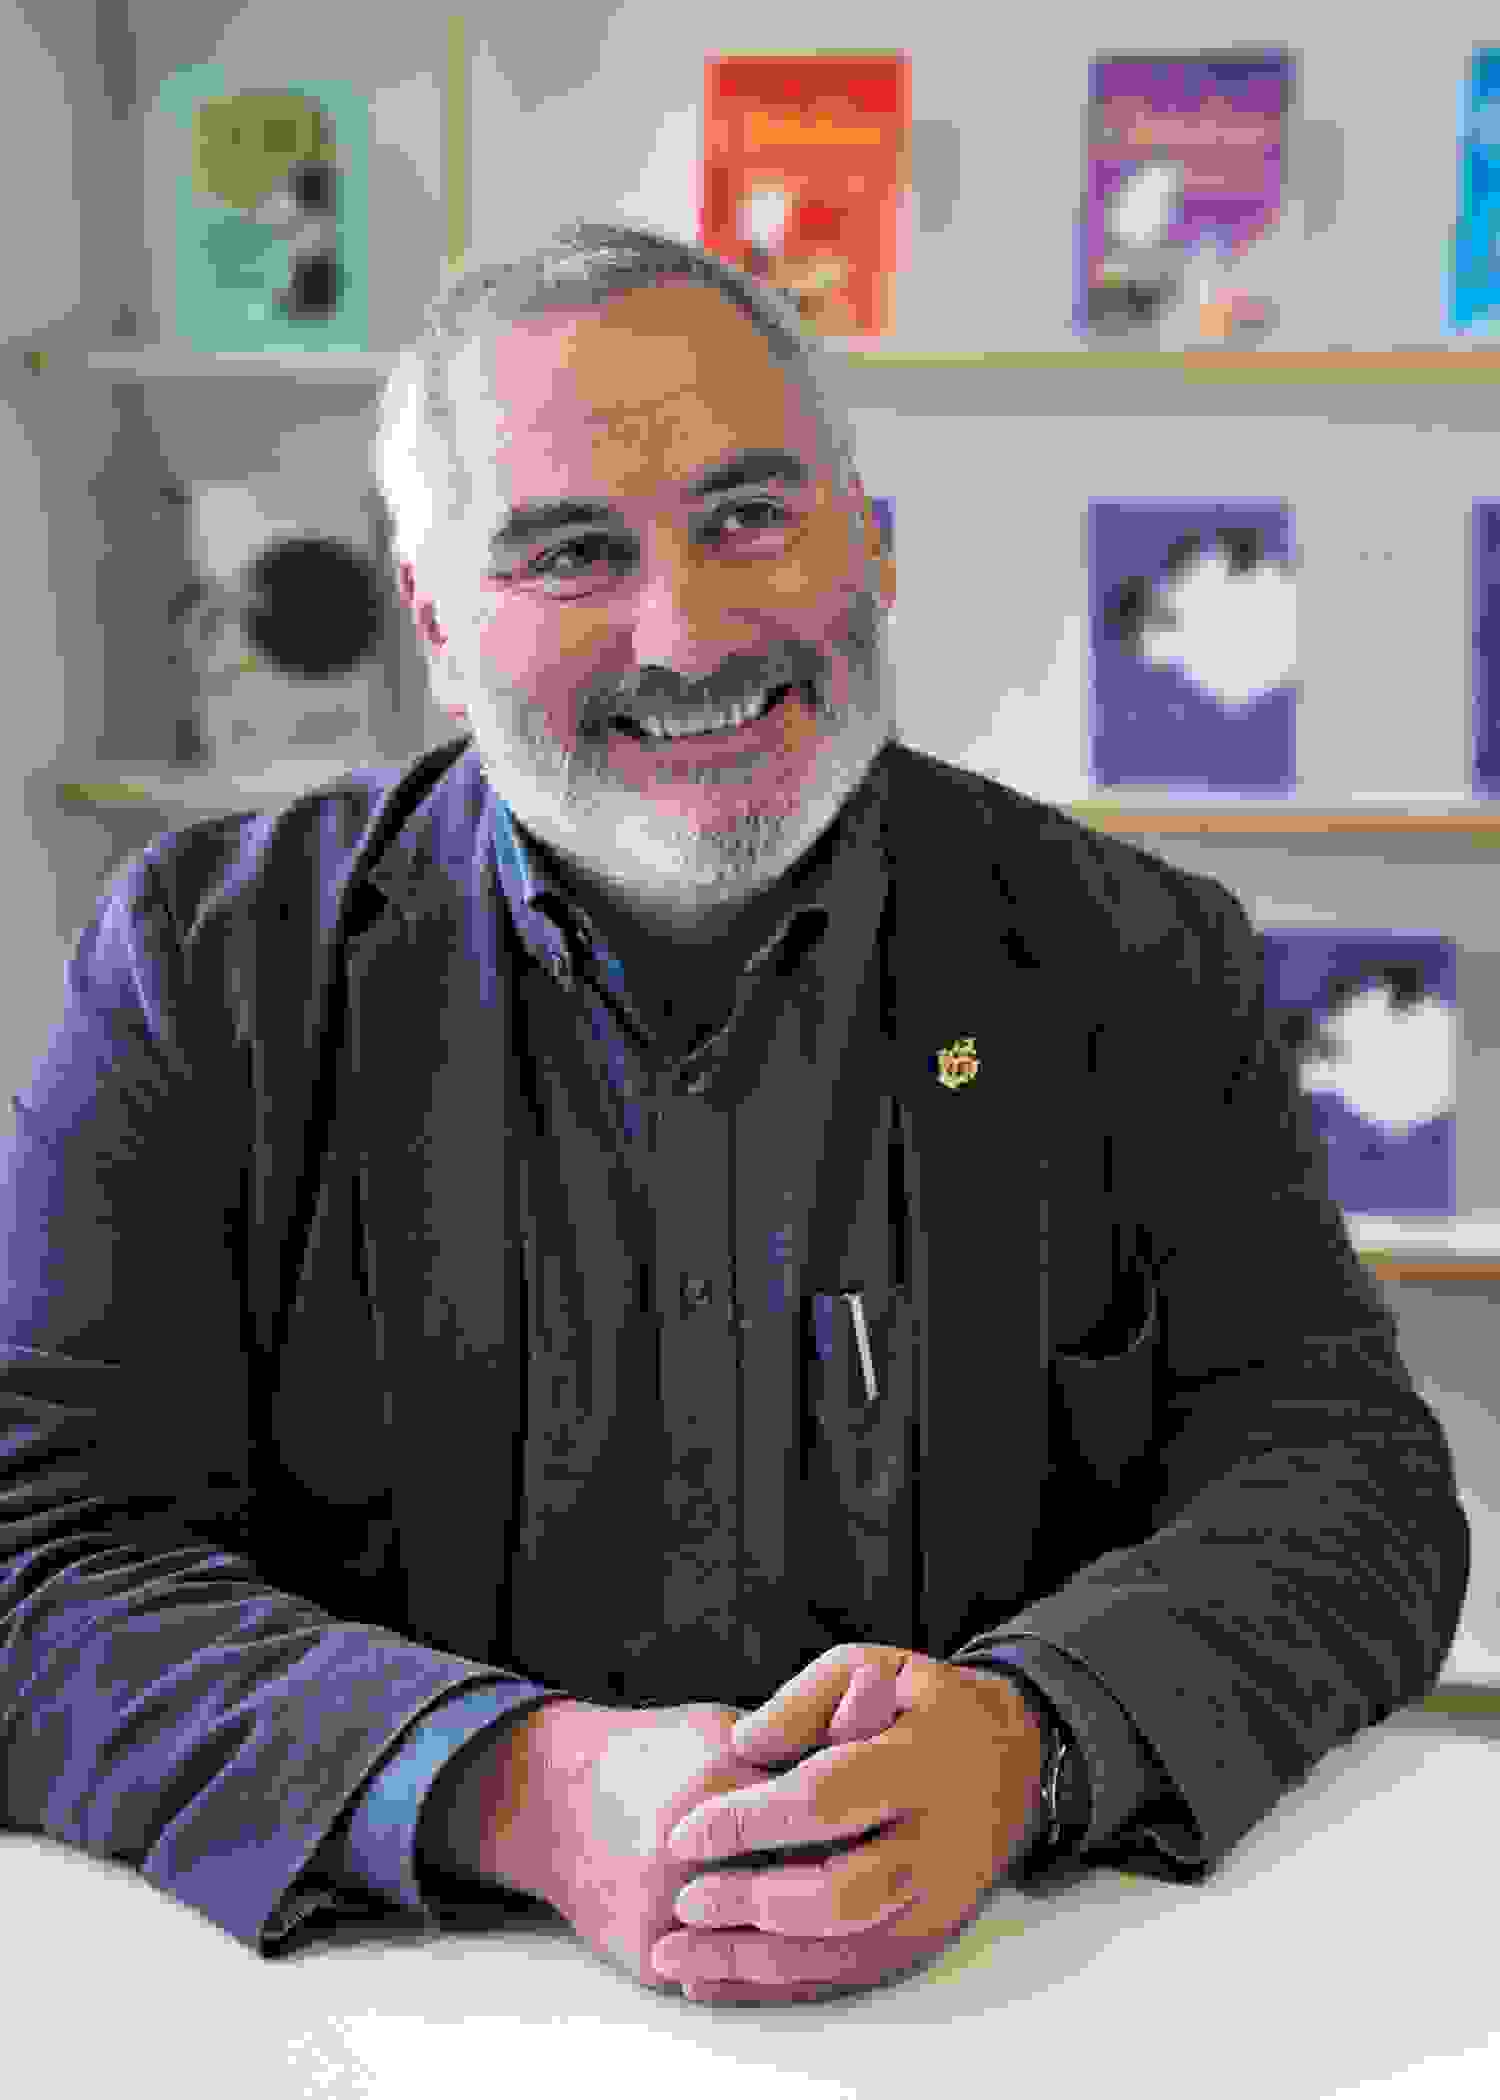 Chris Riddell and A.F. Harrold Bring Quirky Tales to Life